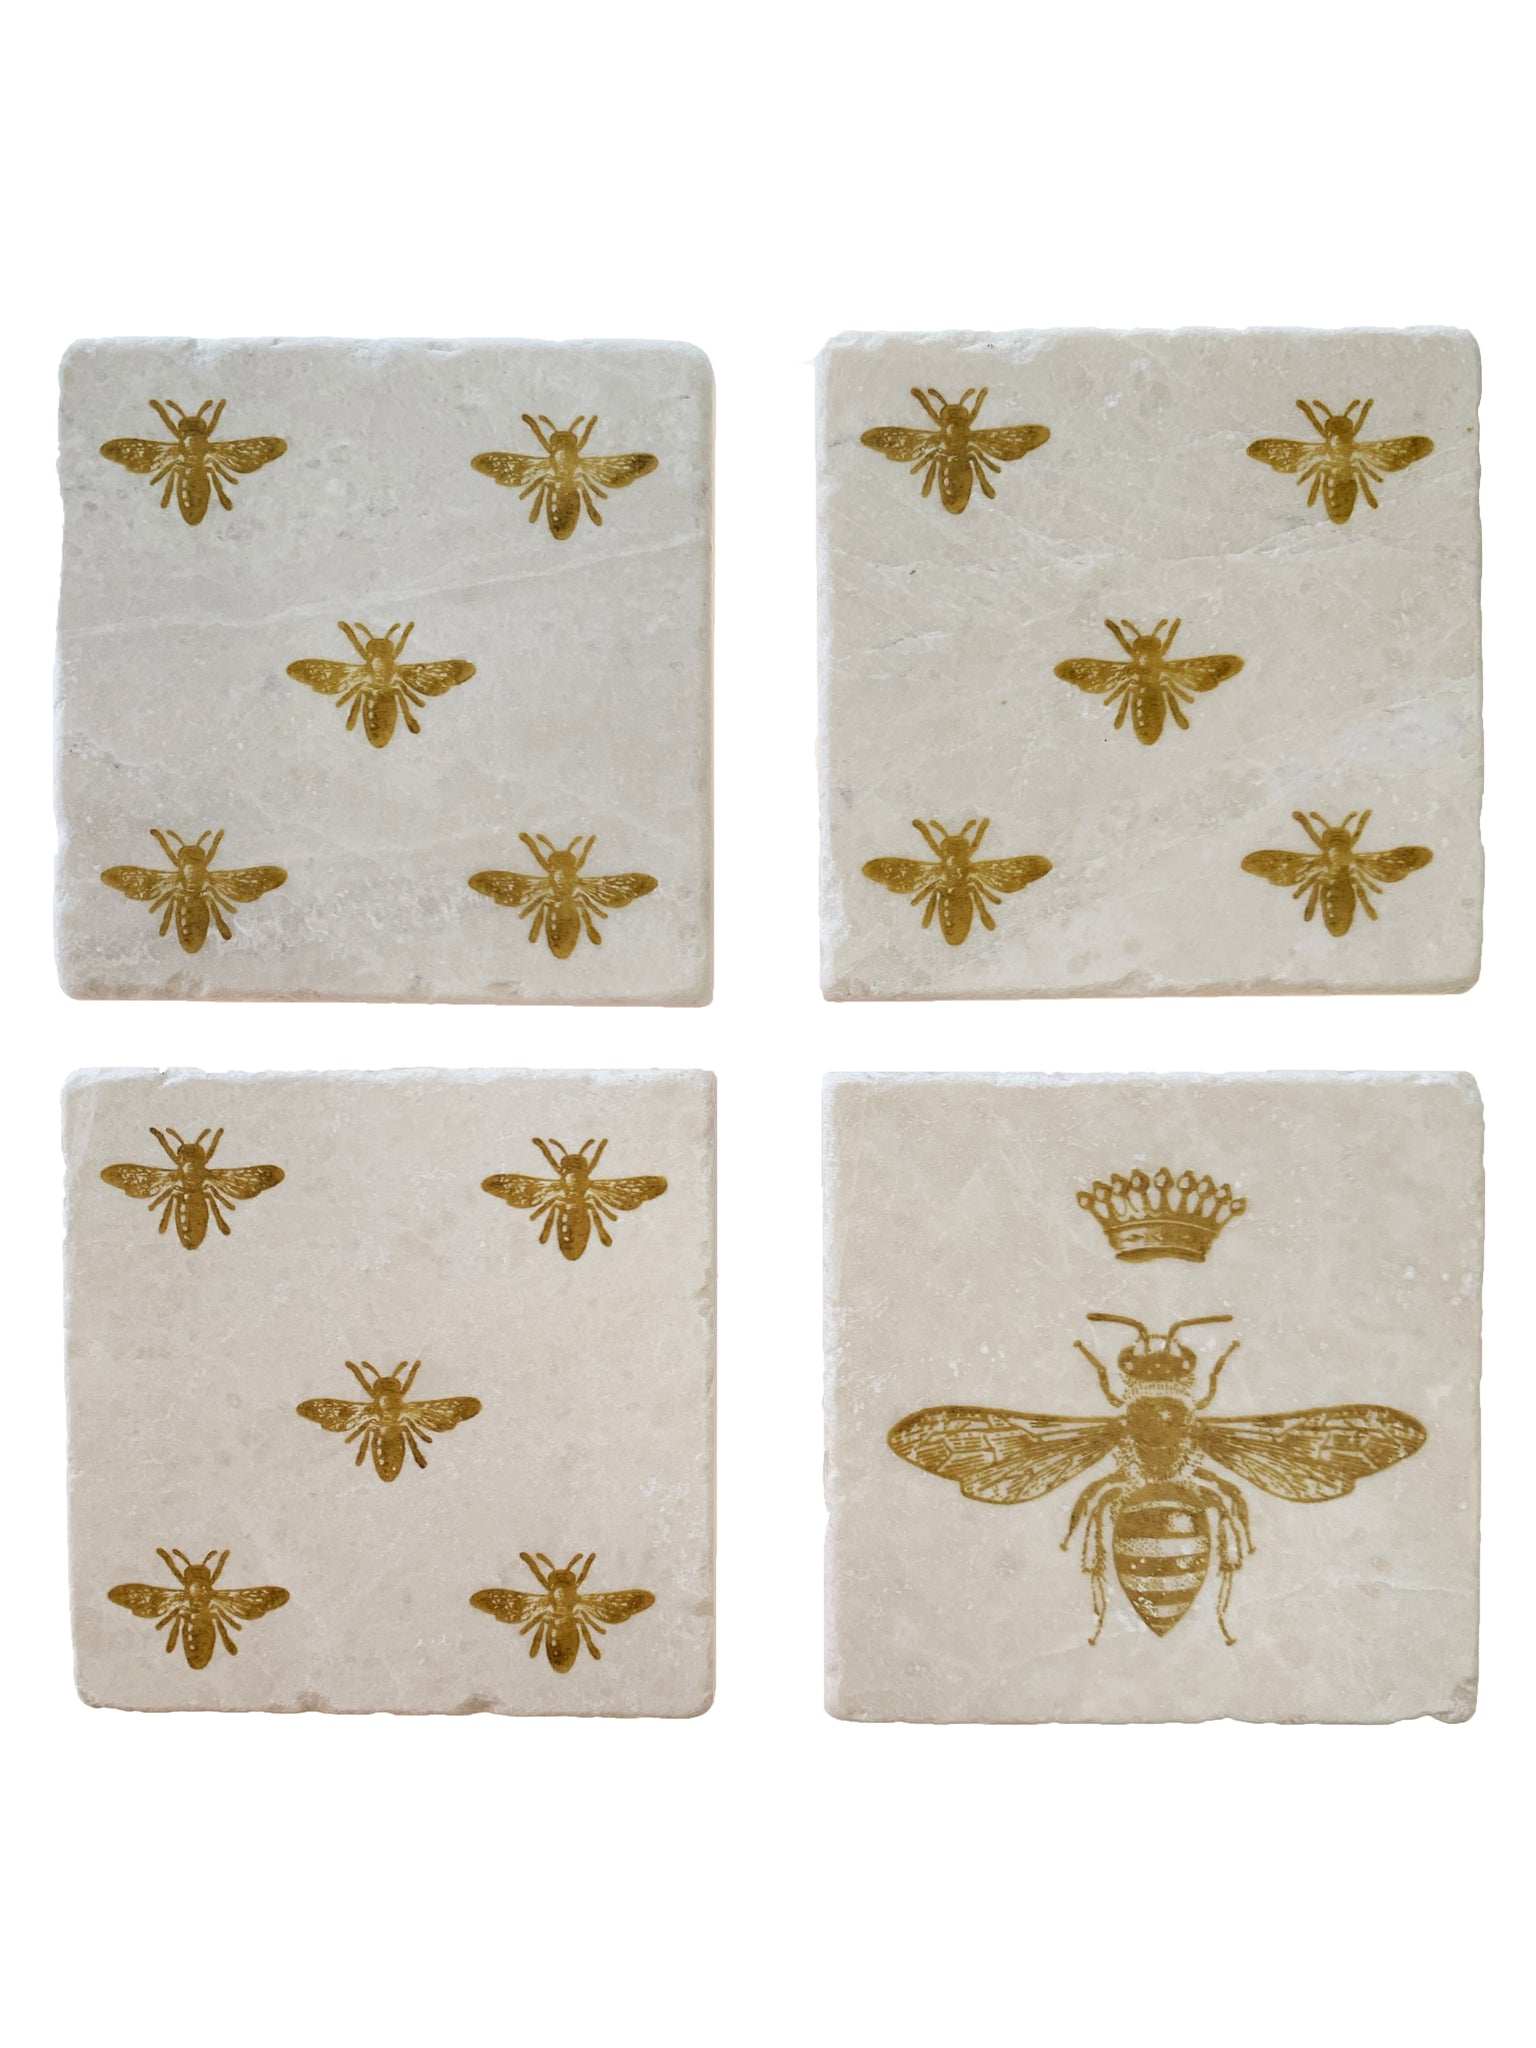 Queen Bee Coaster Set